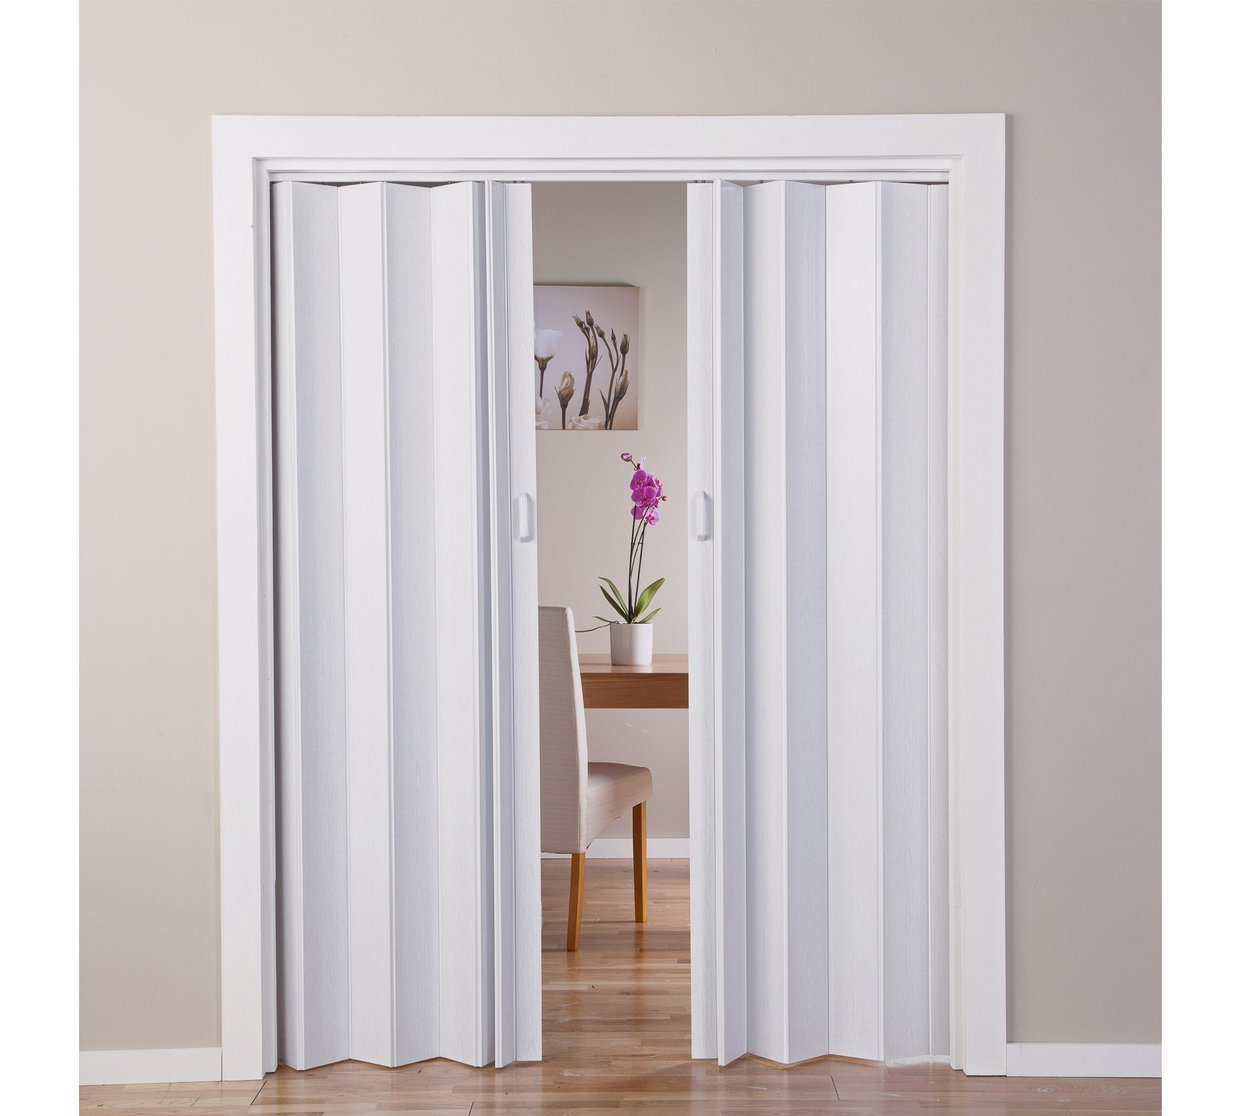 With Oak - Puerta doble efecto plegable, color blanco (770045422 ...